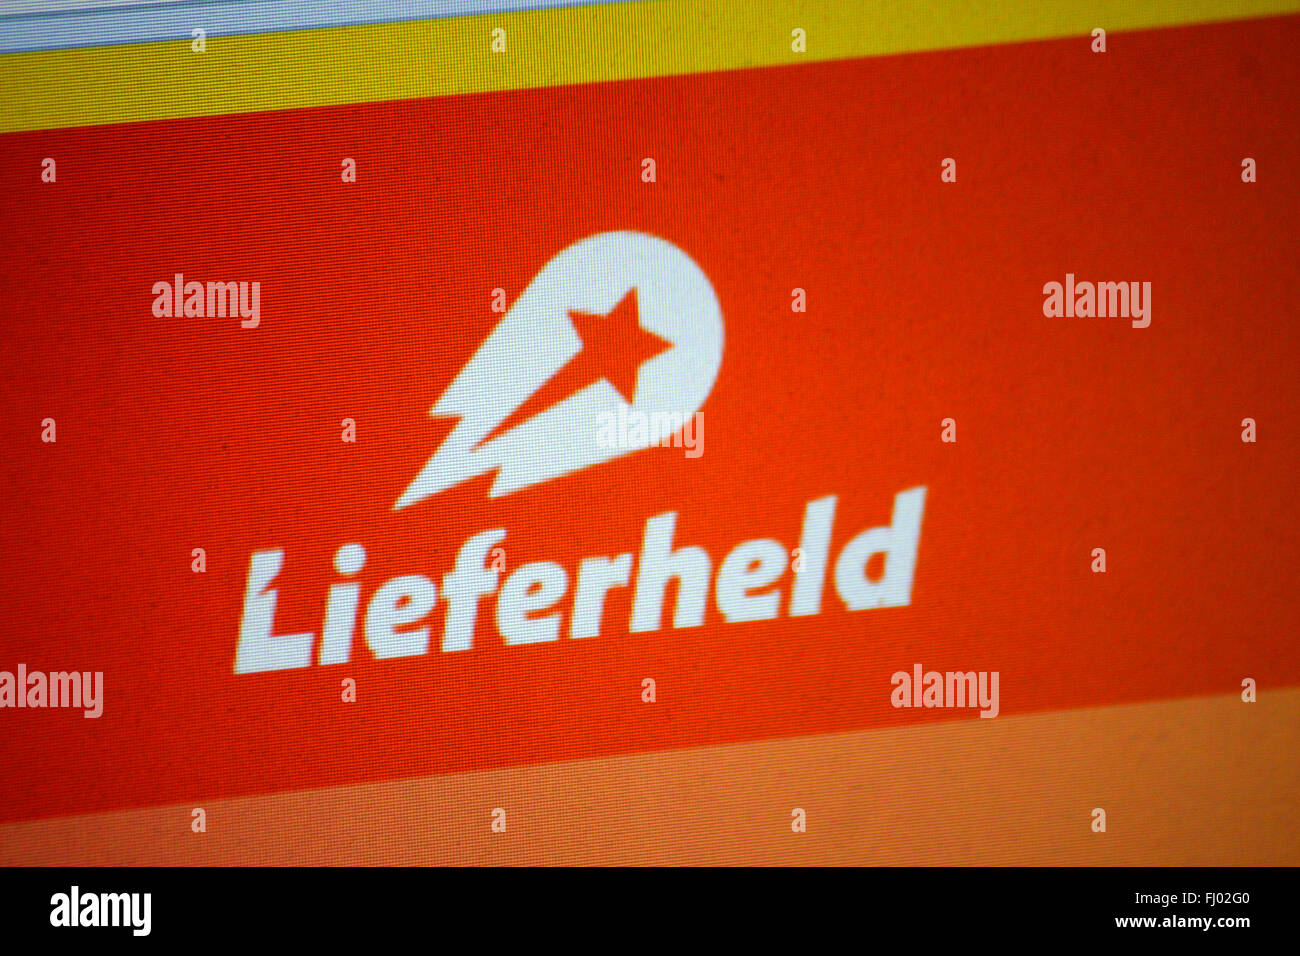 Markenname: 'Lieferheld' (Delivery Hero), Berlin. - Stock Image